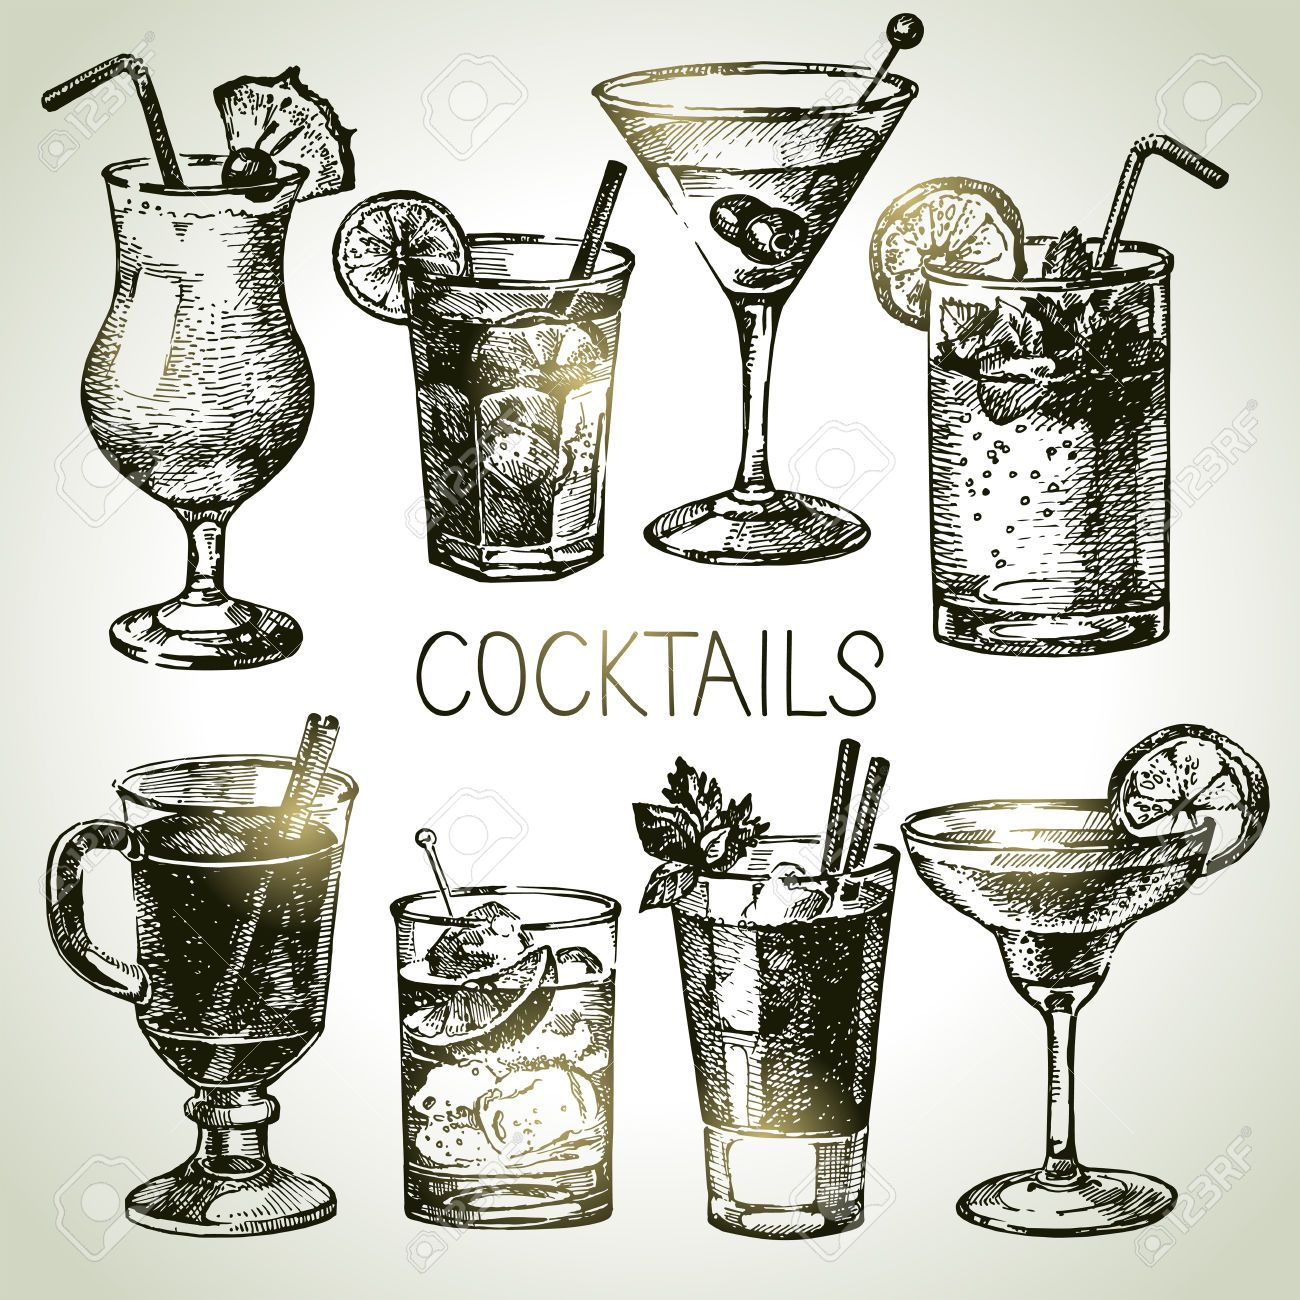 Cocktail clipart royalty free. Drawing cliparts stock vector